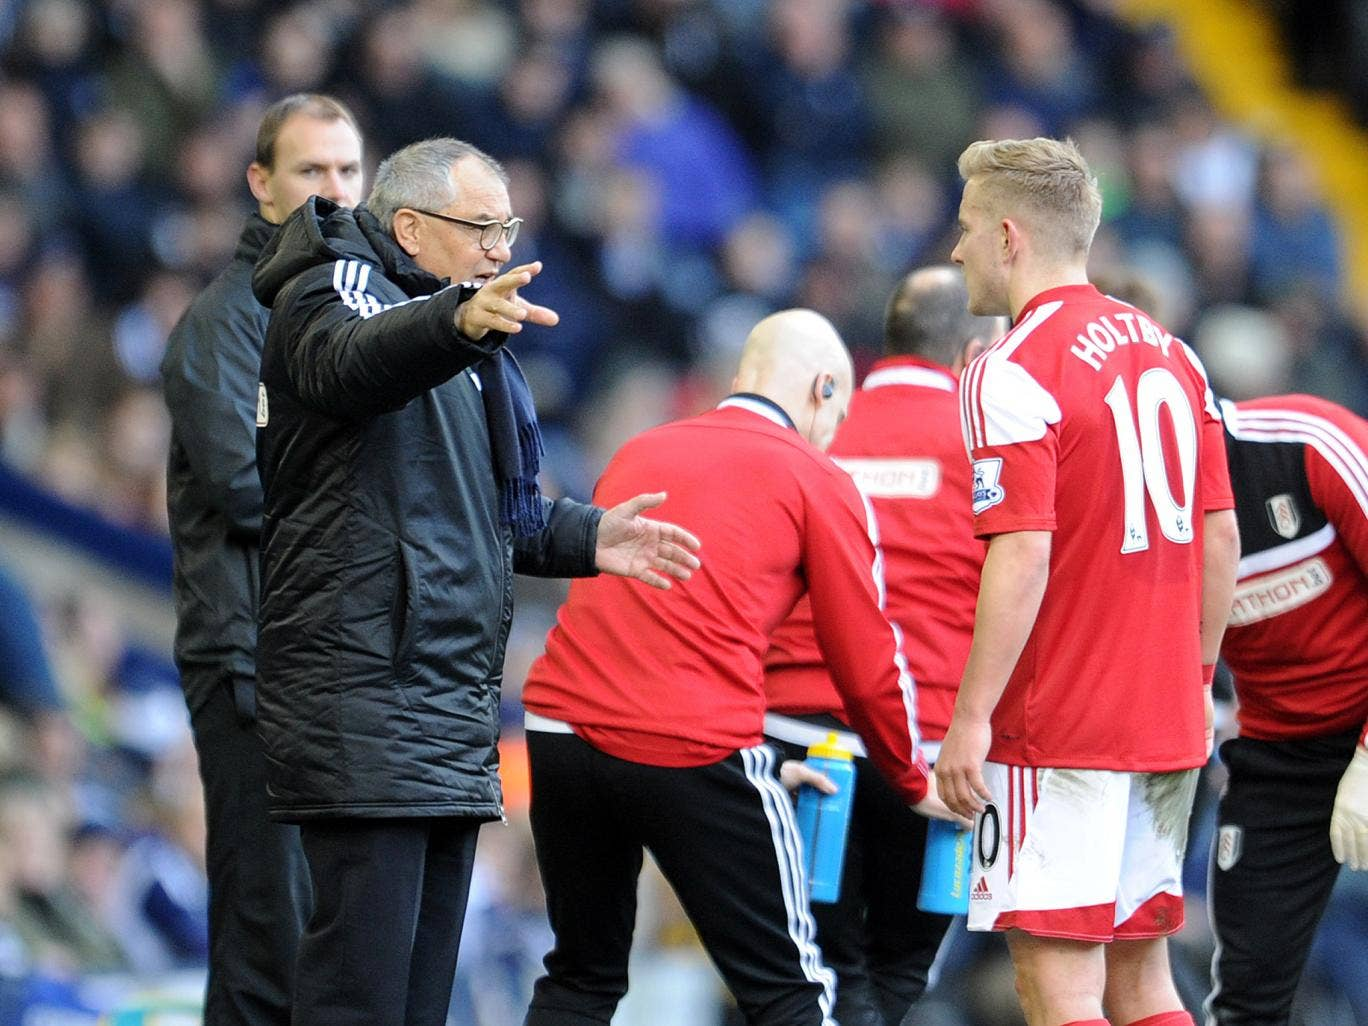 Felix Magath manager of Fulham during the Barclays Premier League match between West Bromwich Albion and Fulham at the Hawthorns